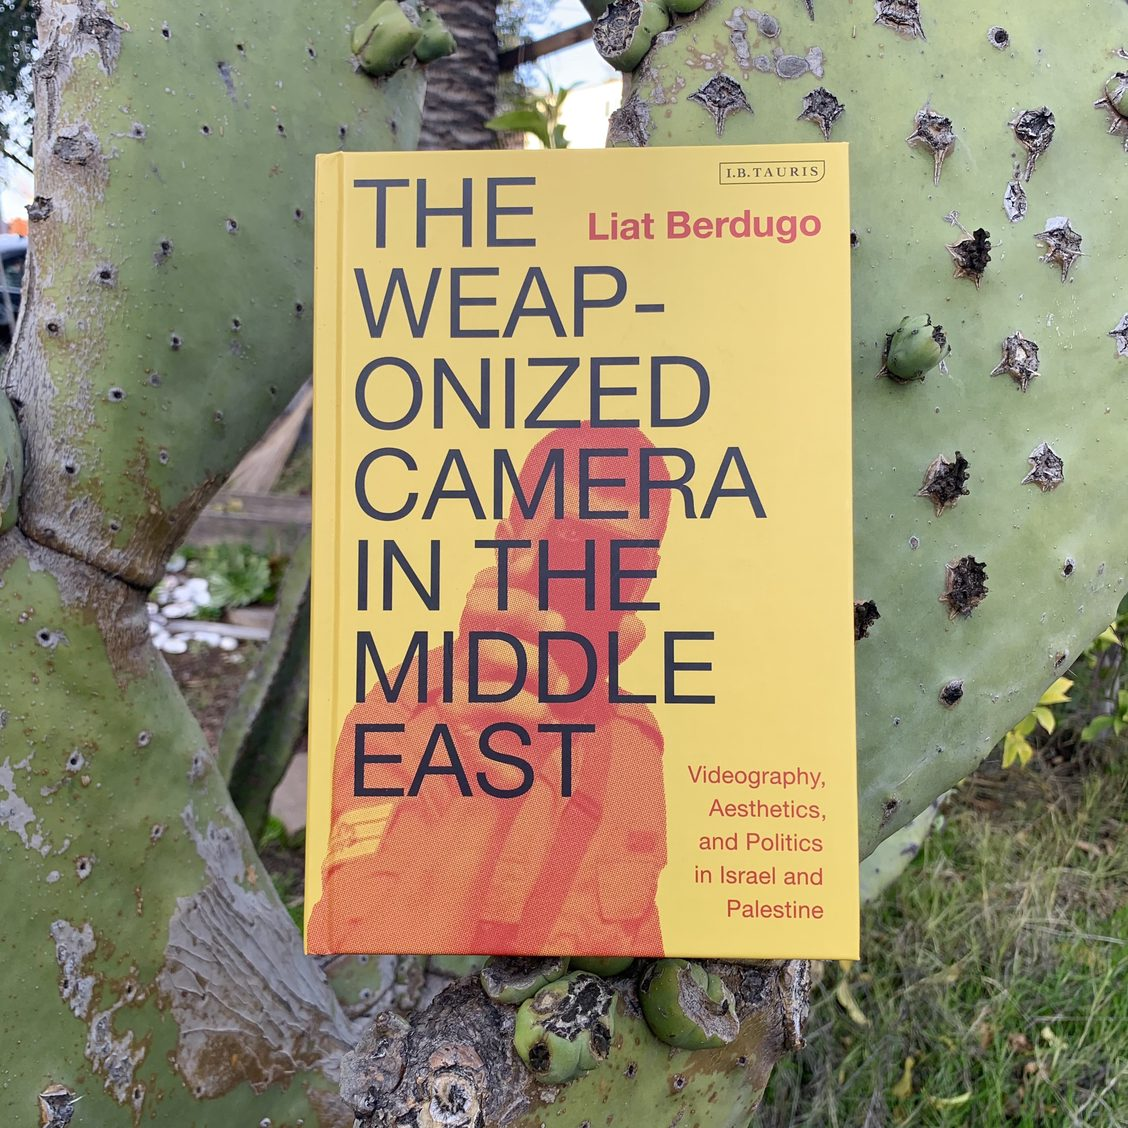 Liat Berdugo, author of The Weaponized Camera in the Middle East, joins the 2021 Design Incubation Fellowship